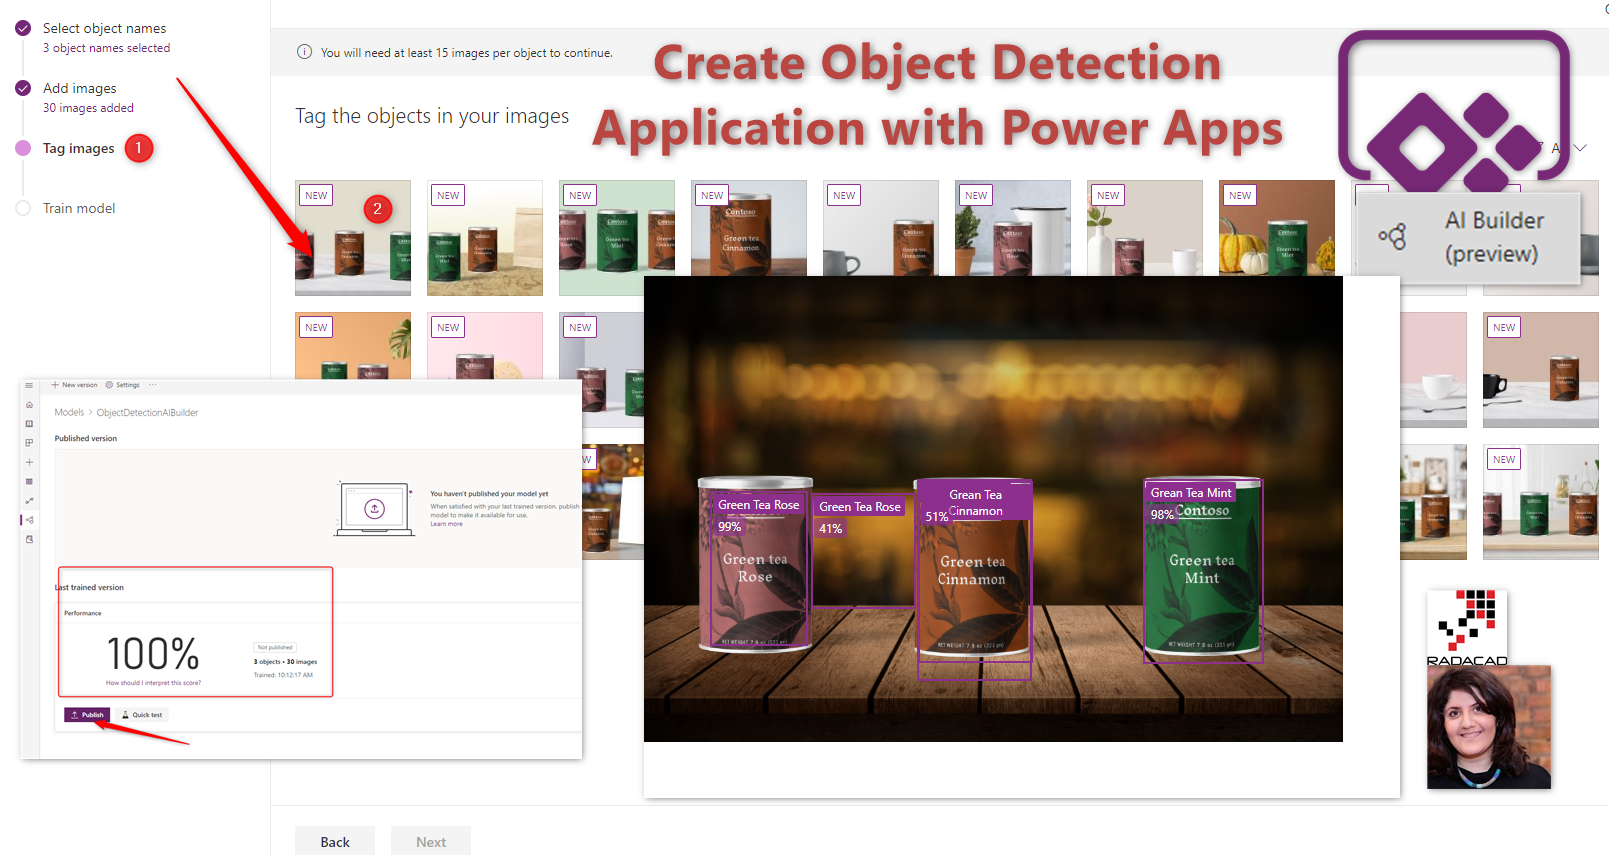 Object Detection Application with AI Builder and Power Apps